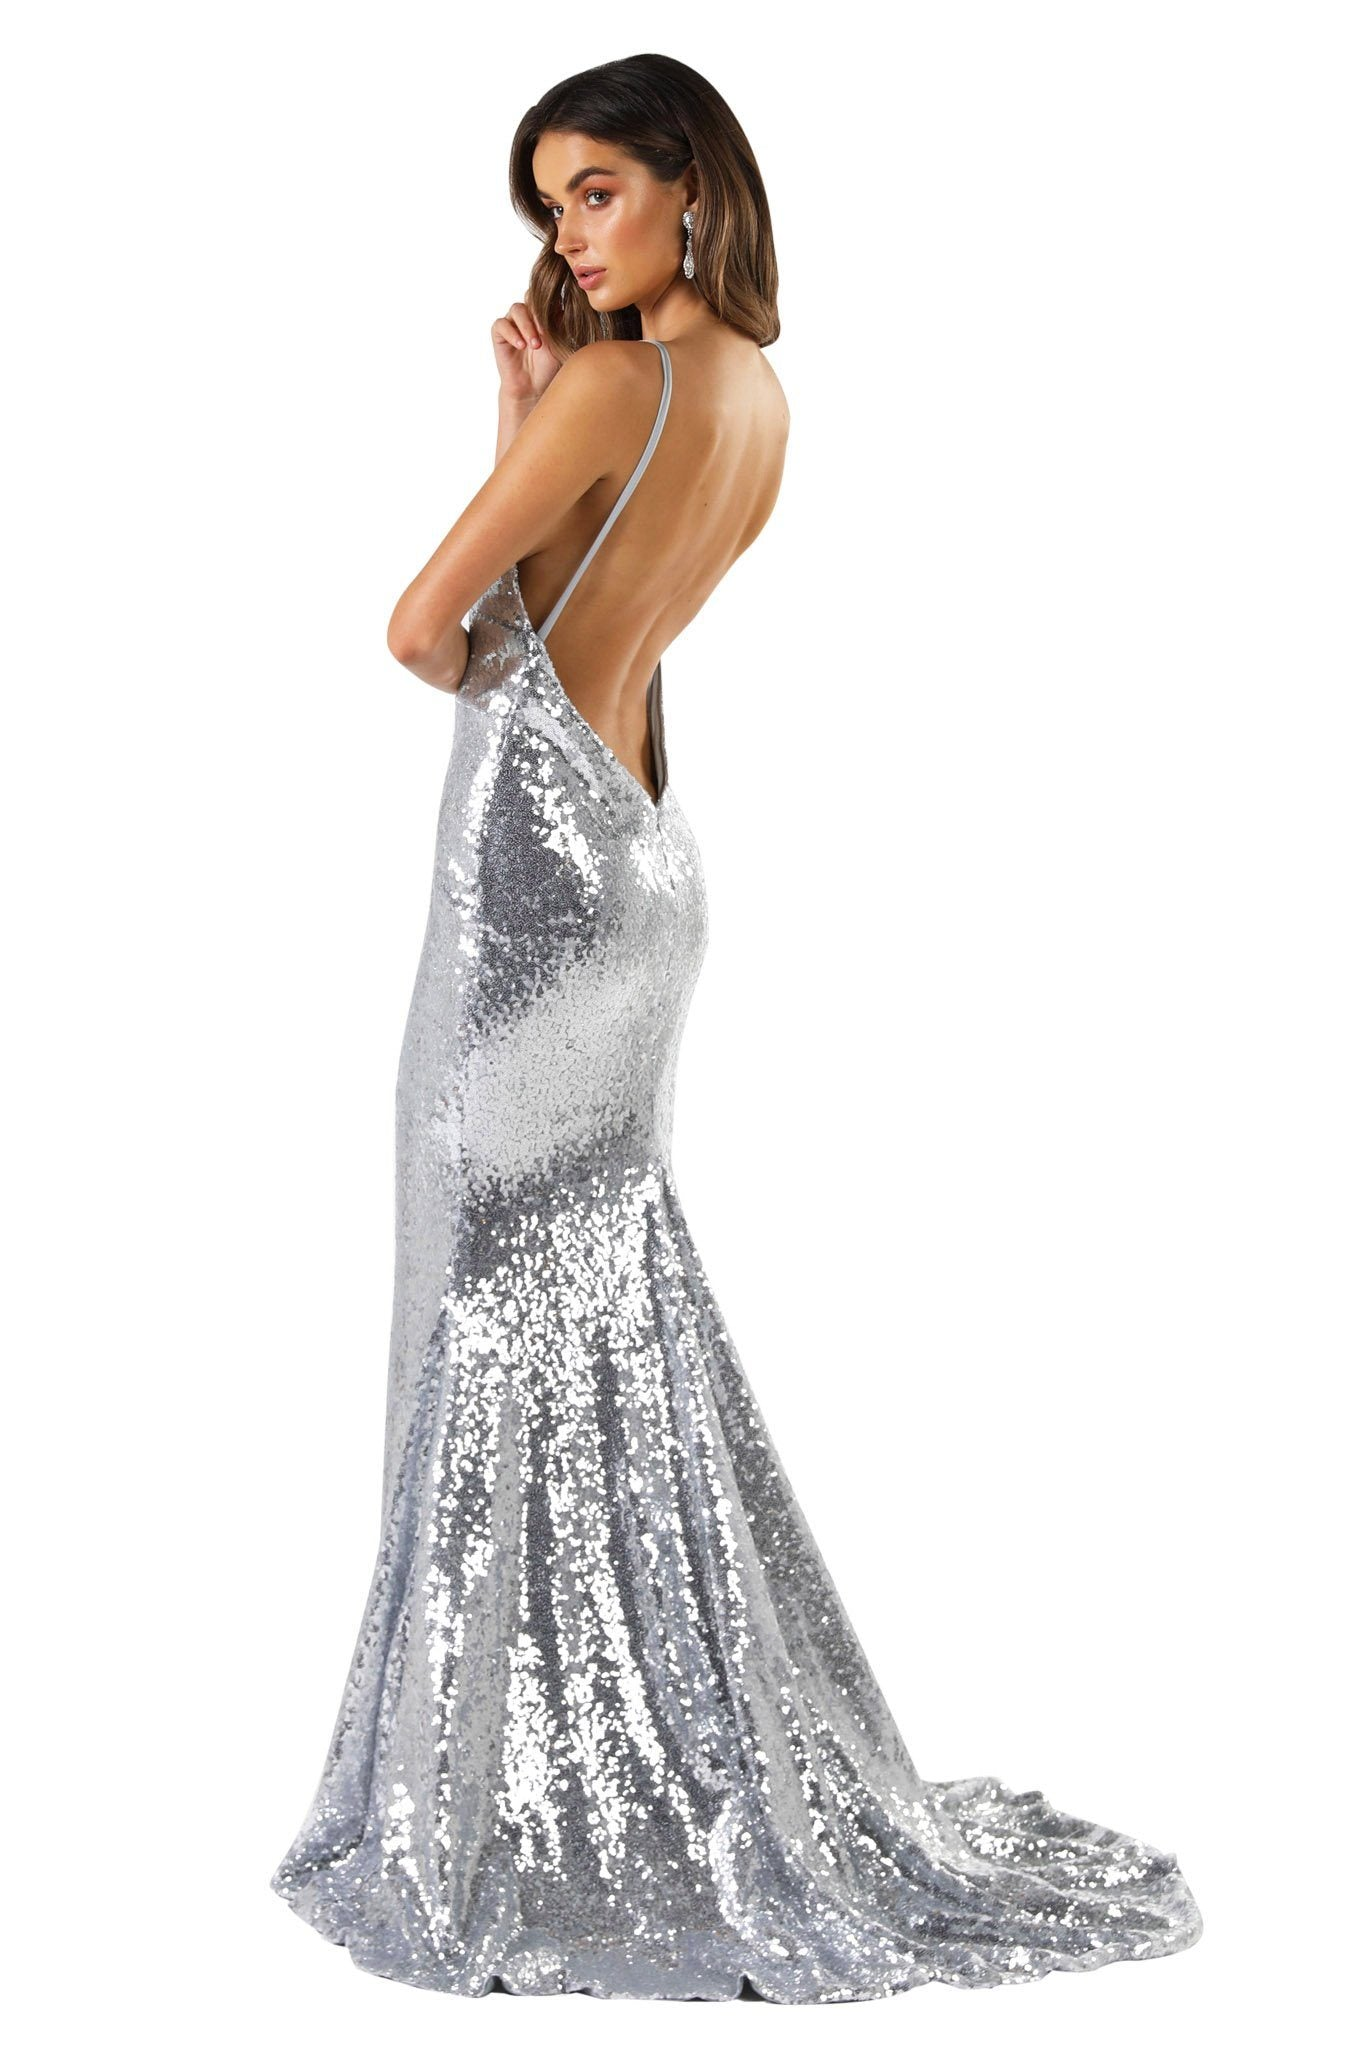 V Shape Backless Design of Silver Fitted Sequin Formal Sleeveless Long Gown featuring Deep V Neck, Thin Shoulder Straps, Open back design, and Long Train